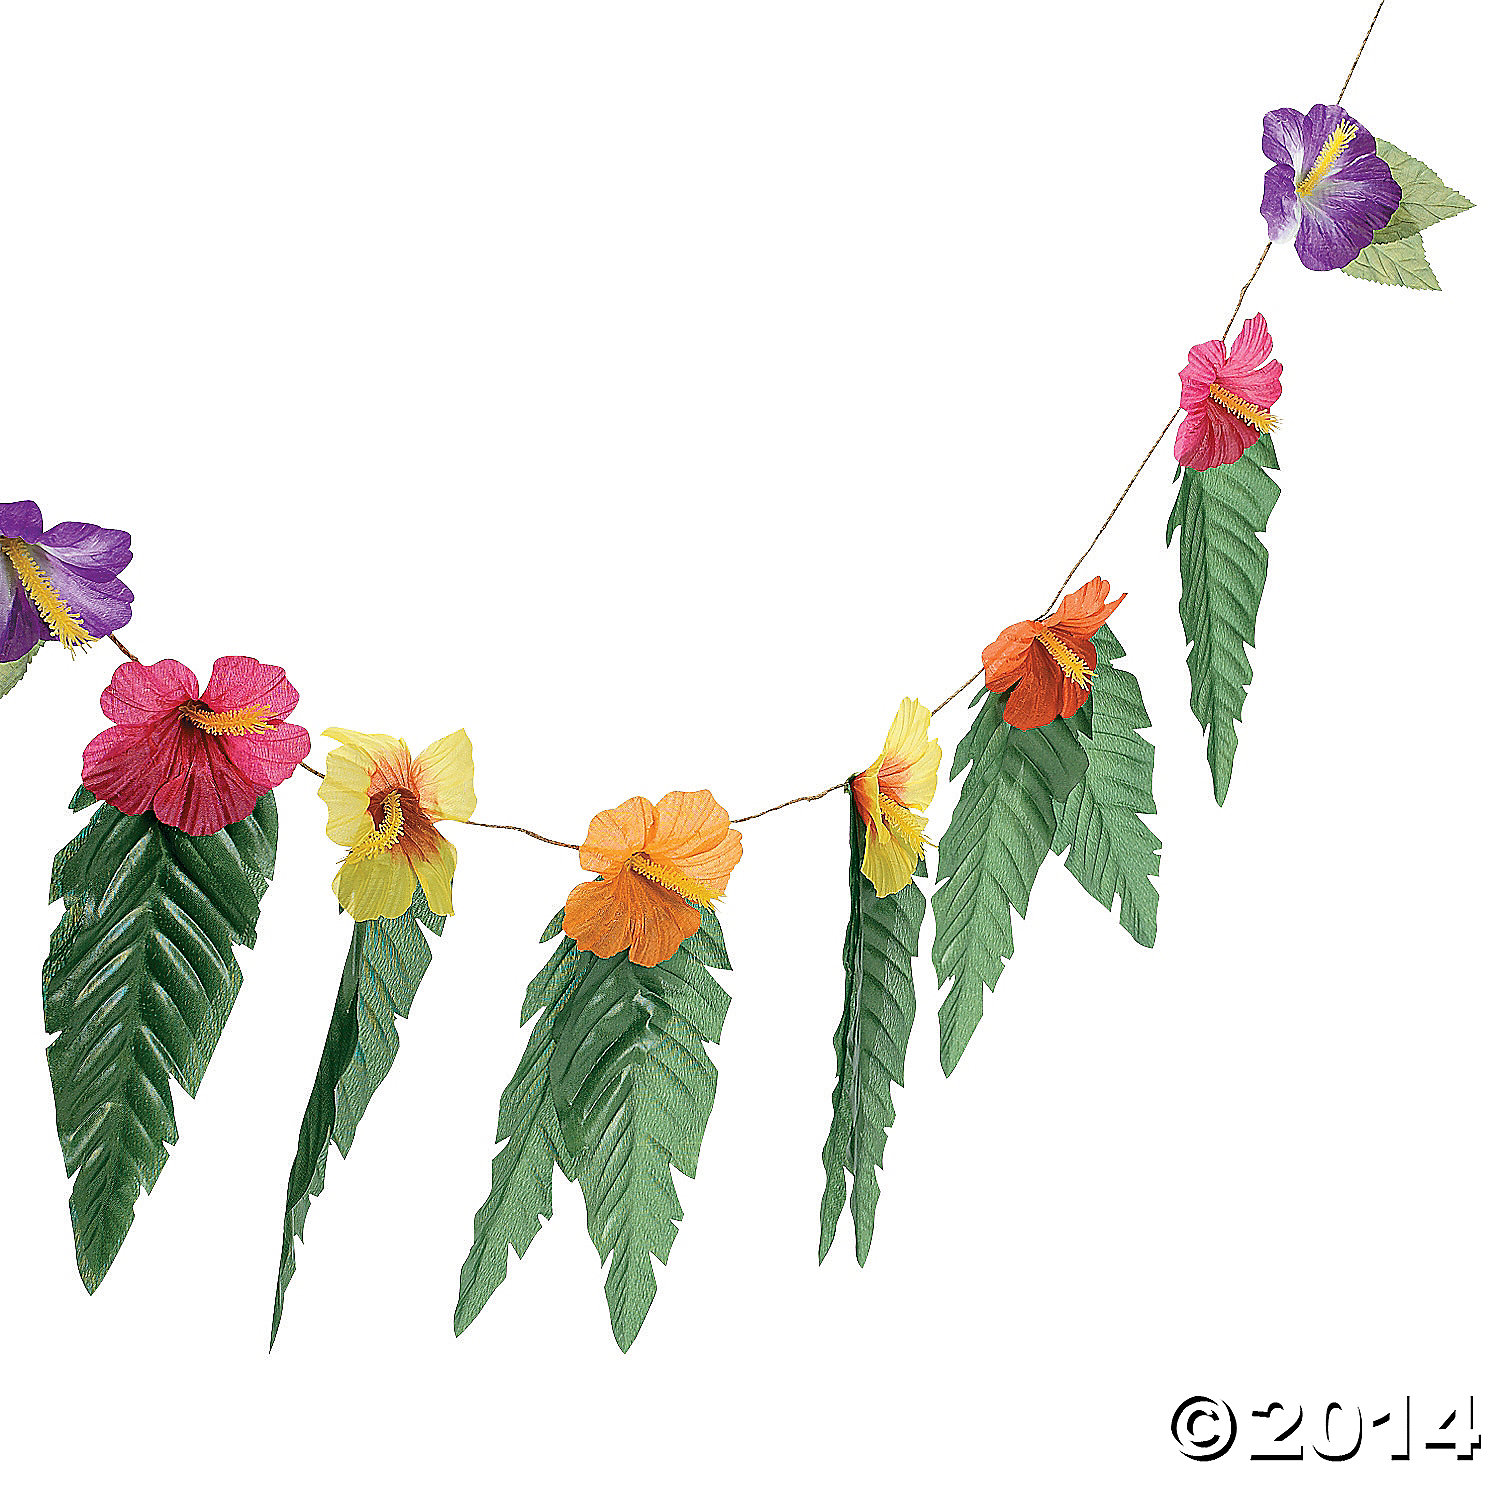 Hibiscus Flower Garland with Leaves 74""